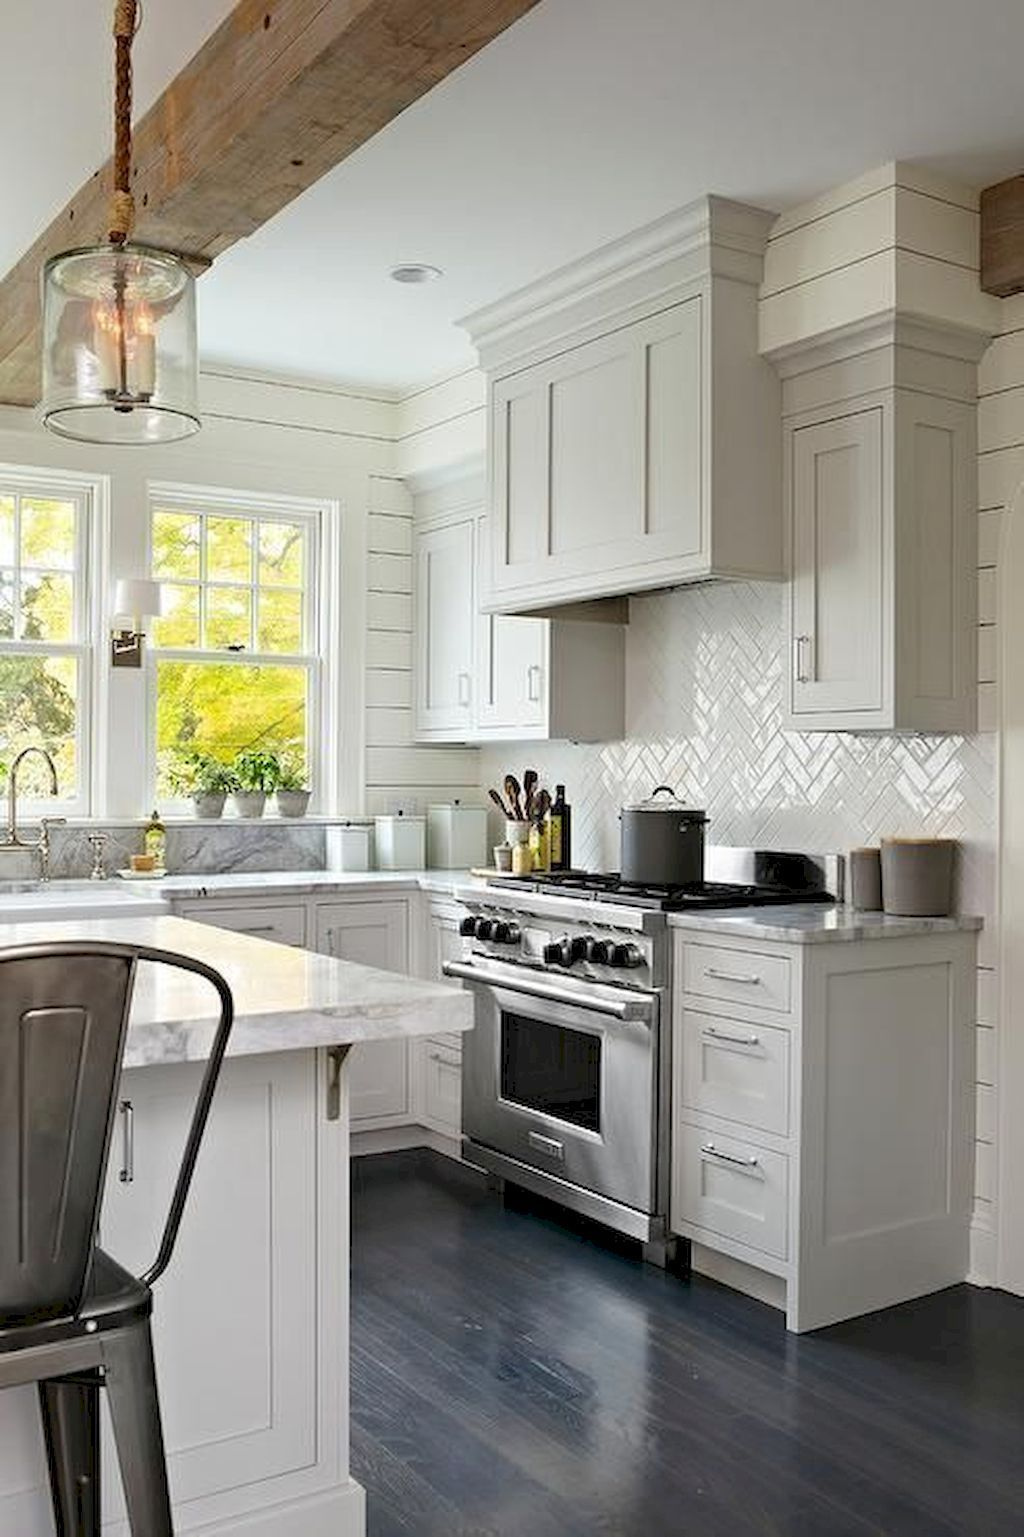 29+ Painted Kitchen Cabinet Ideas   Painted Kitchen Cabinet Ideas ...